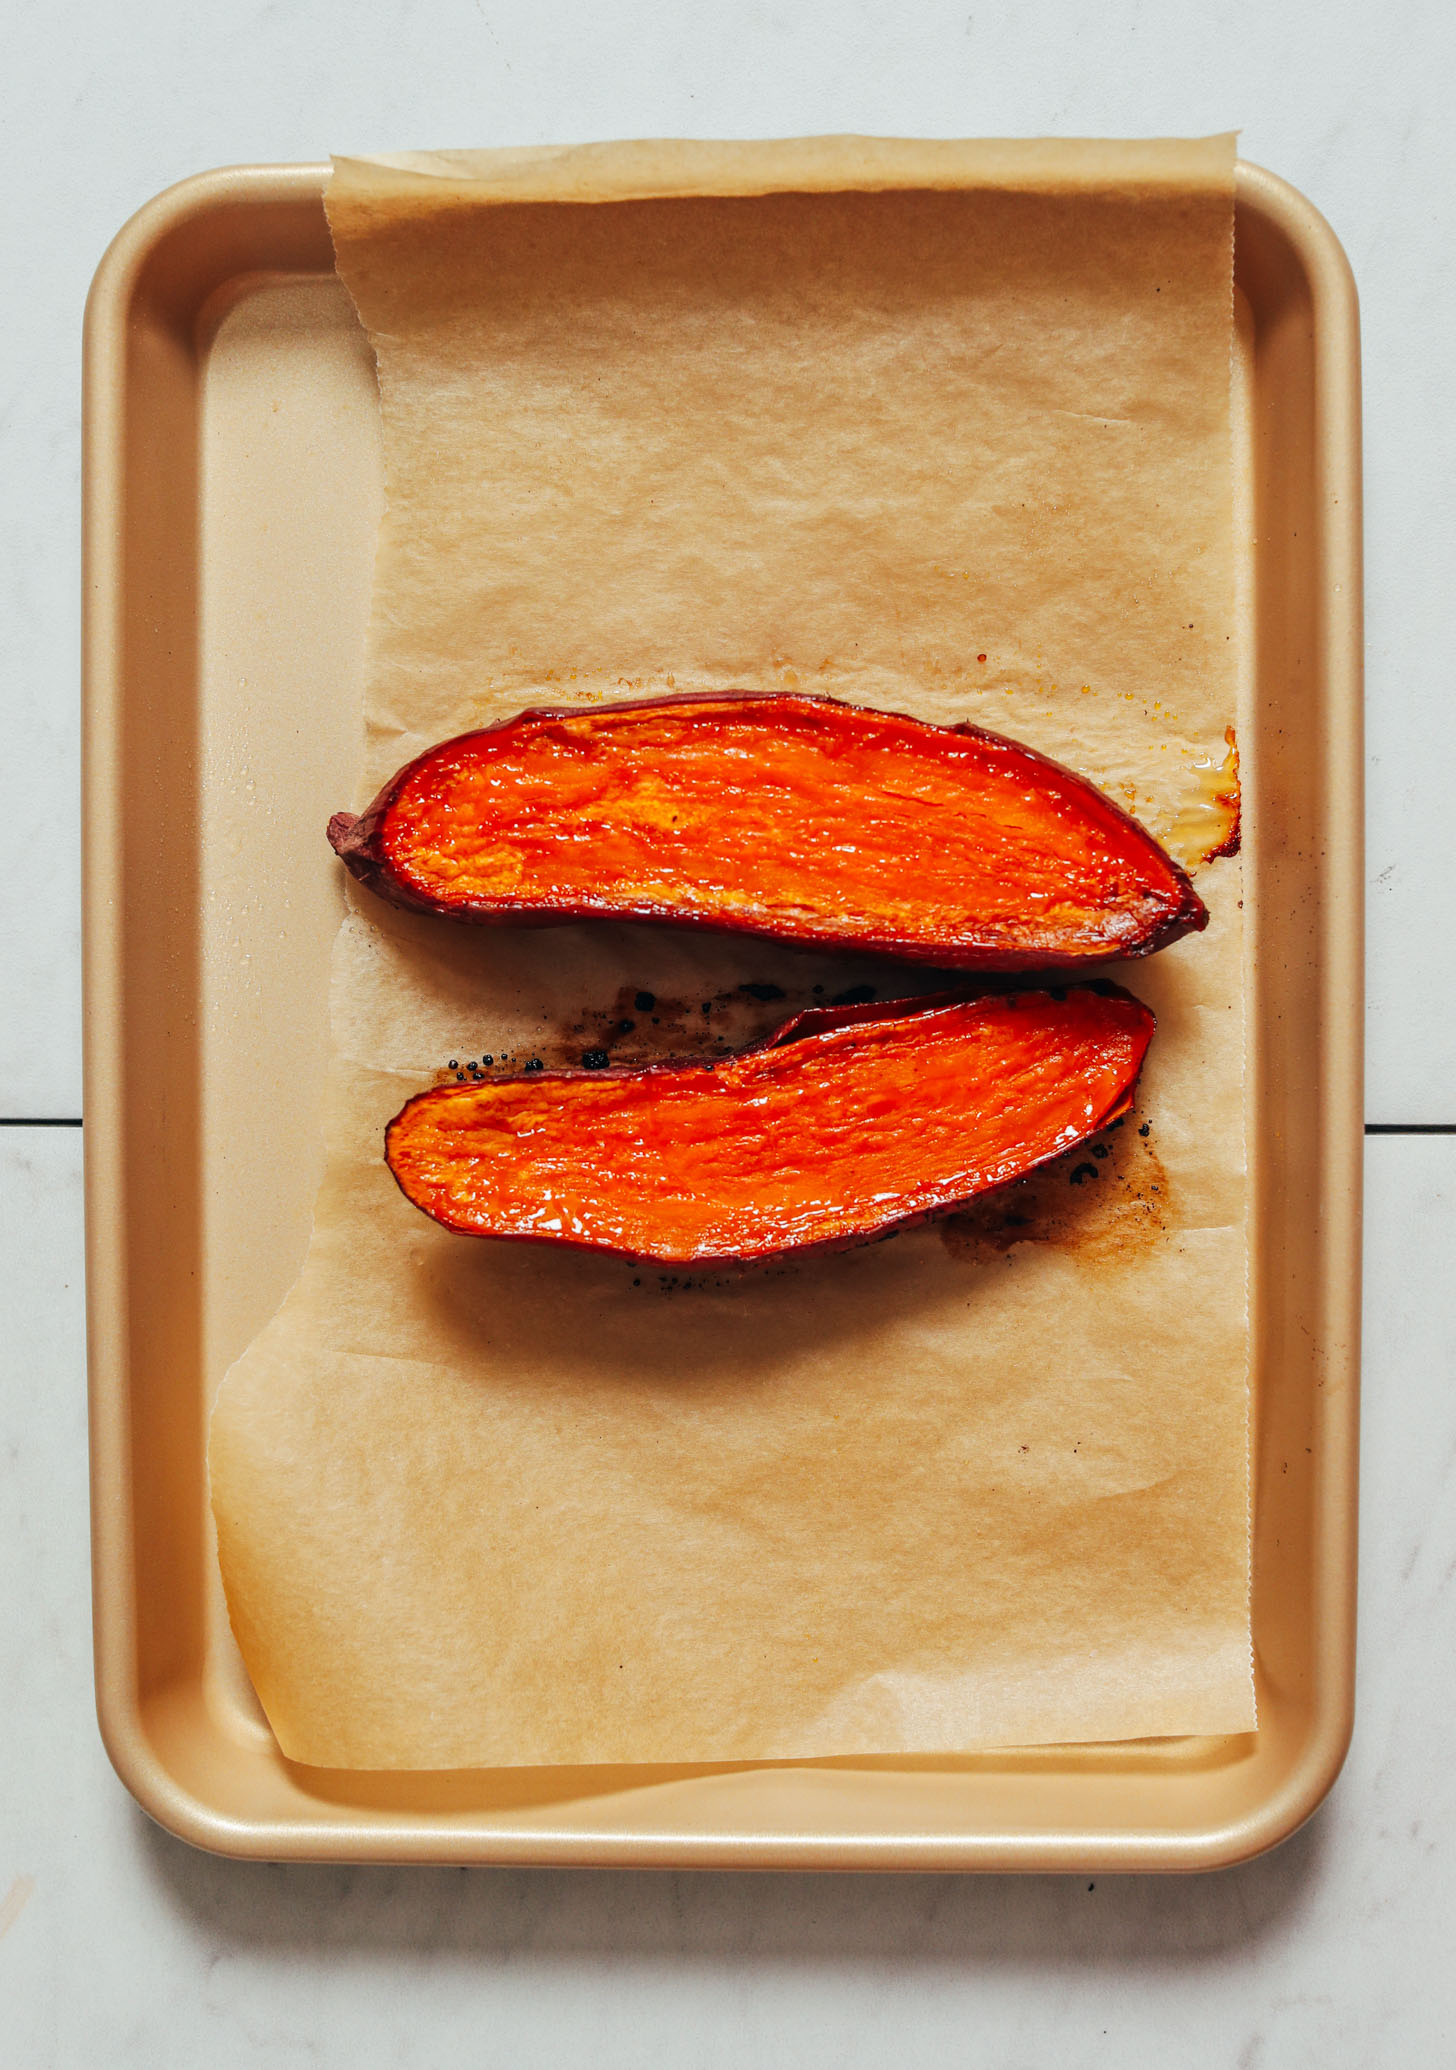 Baking sheet with a halved roasted sweet potato